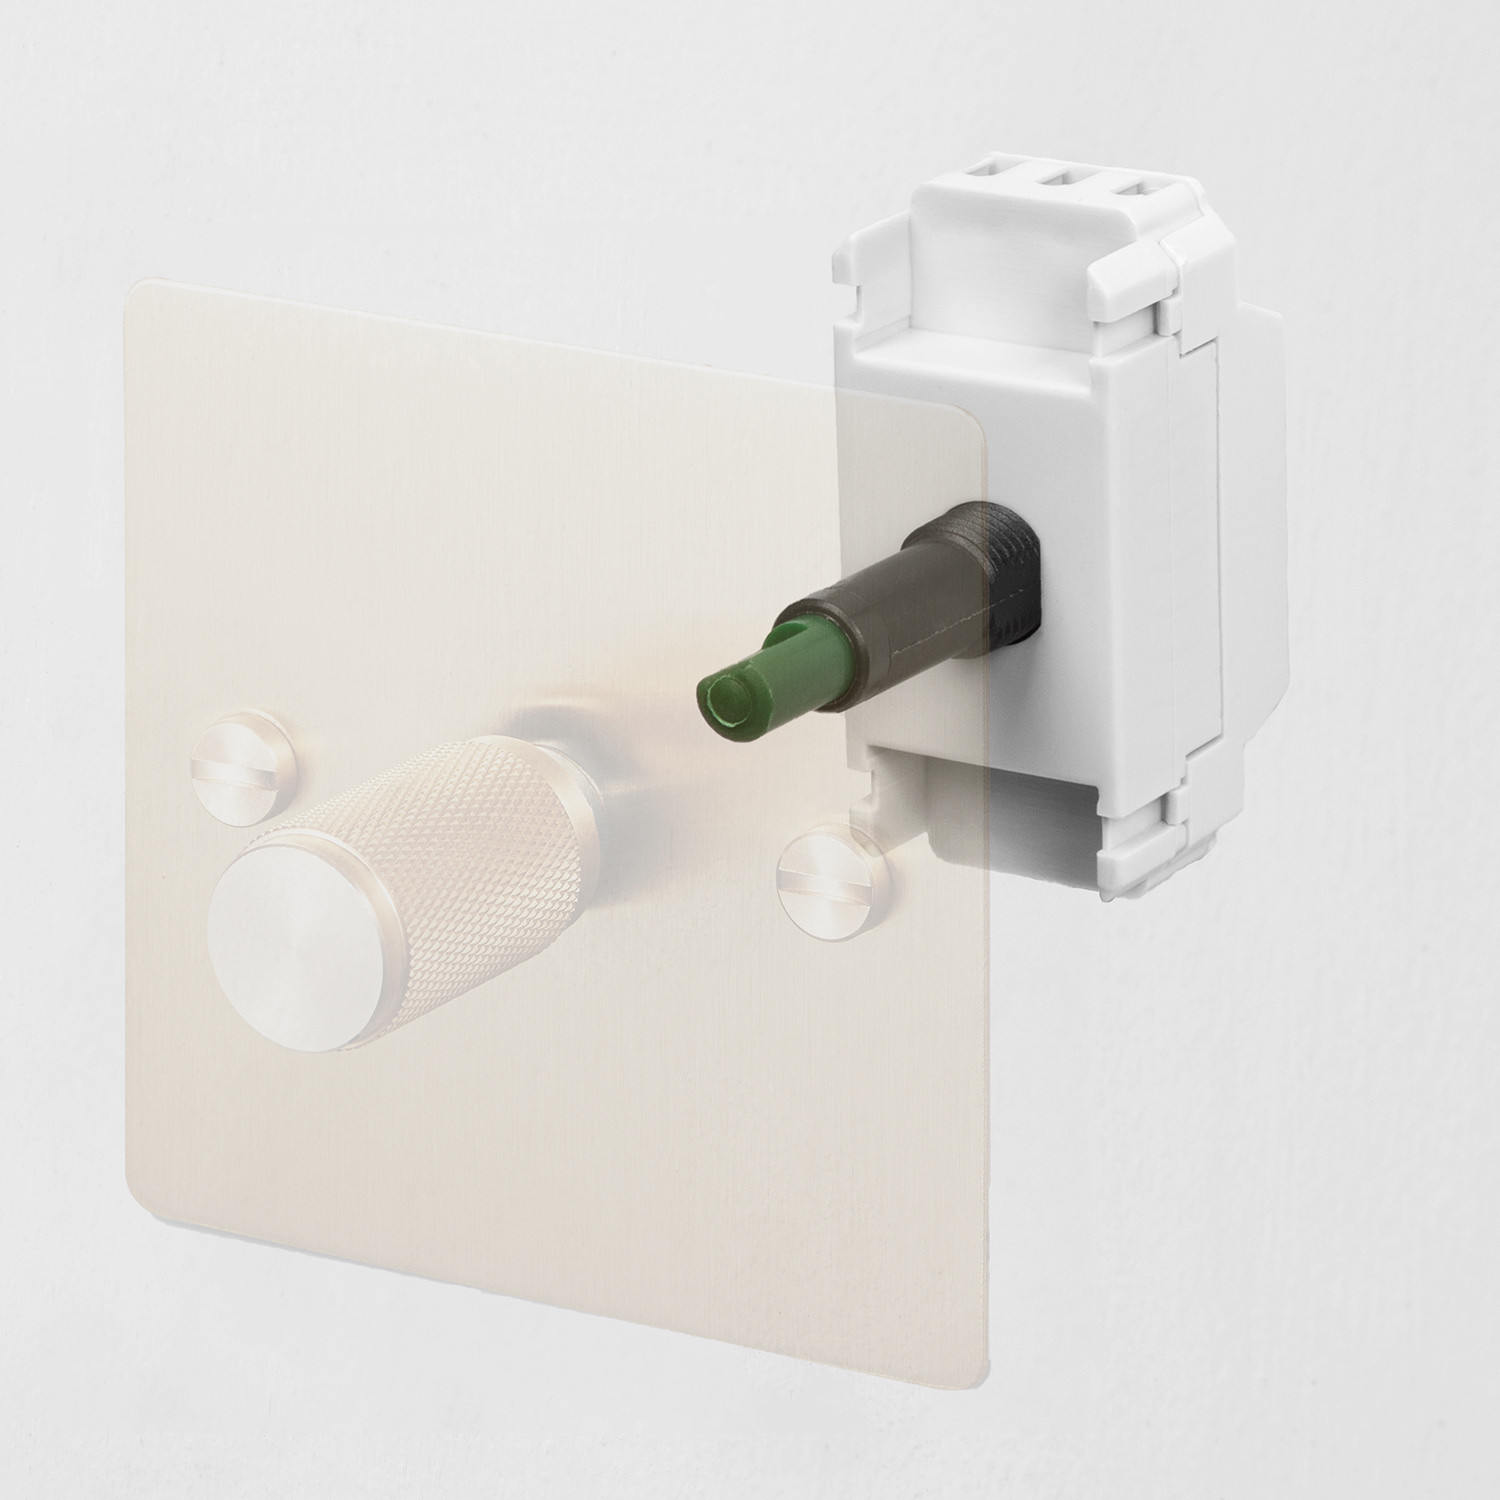 Dimmer Modules 1 10v You May Read About Intermediate Switch What Is